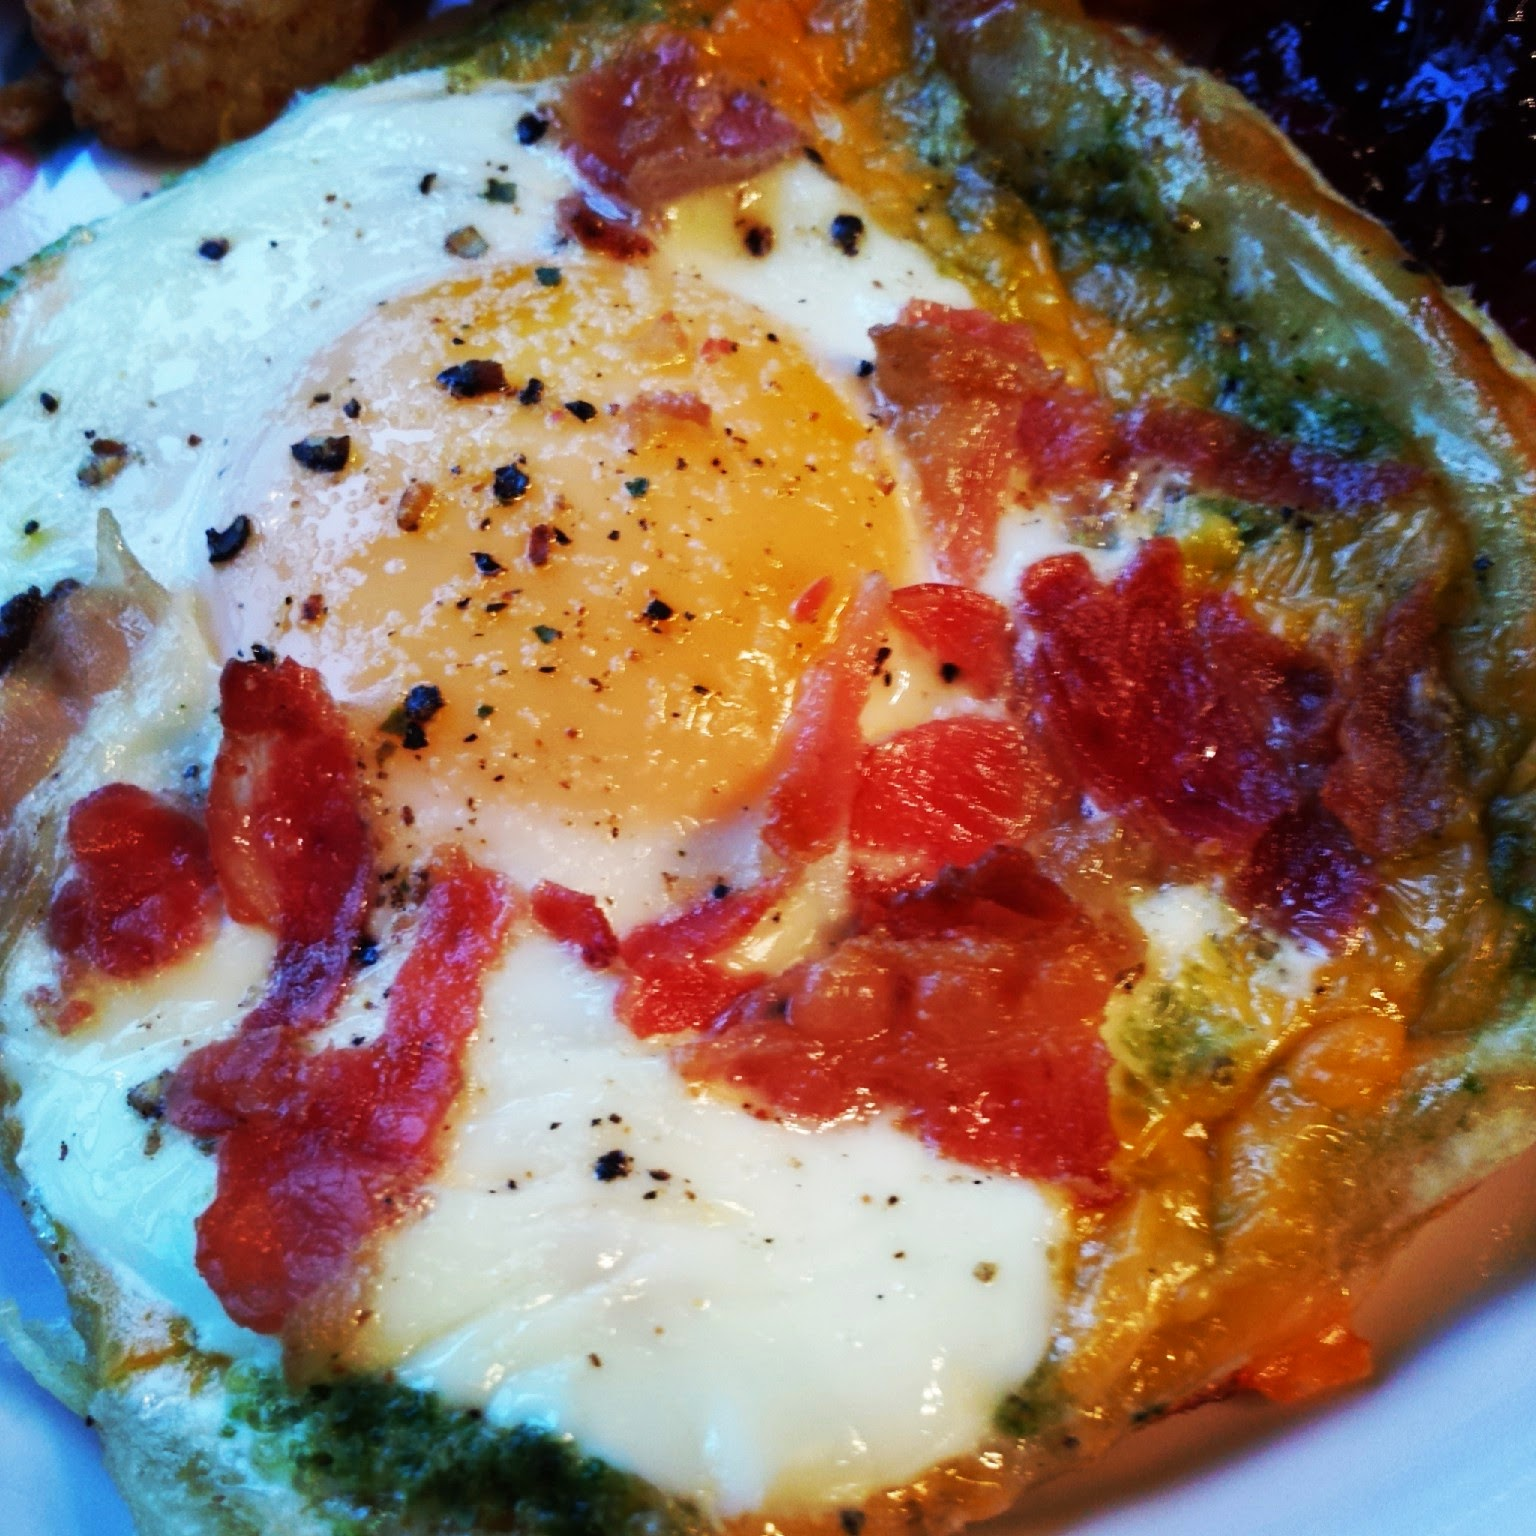 Mika's Pantry: Pesto Puff Pastry Eggs with Bacon and Cheese